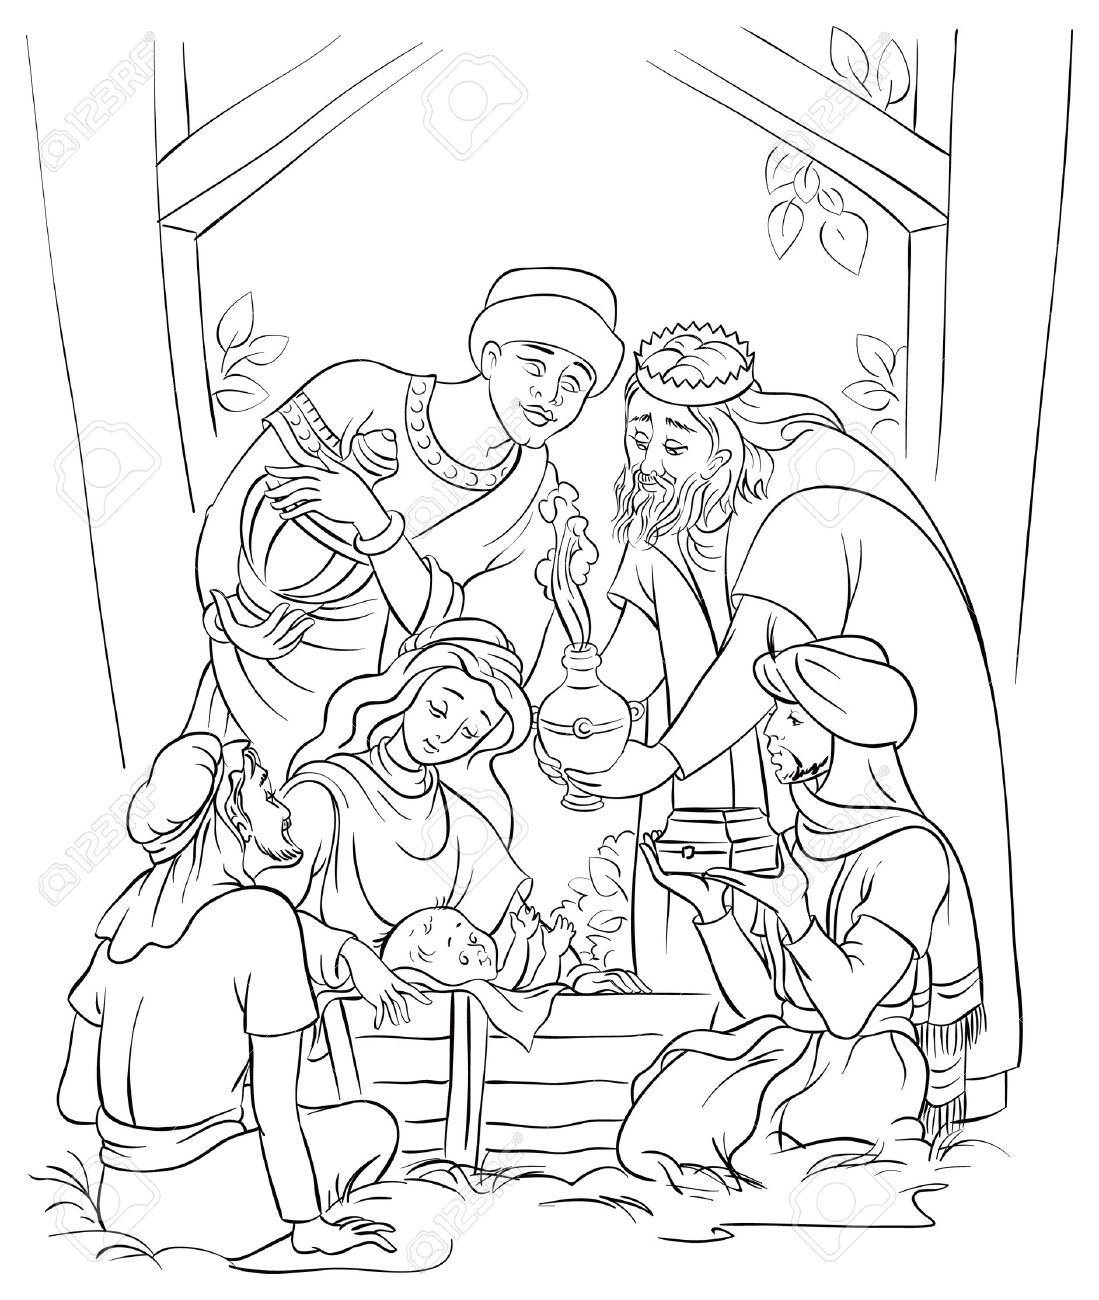 Three wise men coloring pages - Hellokids.com | 1300x1099